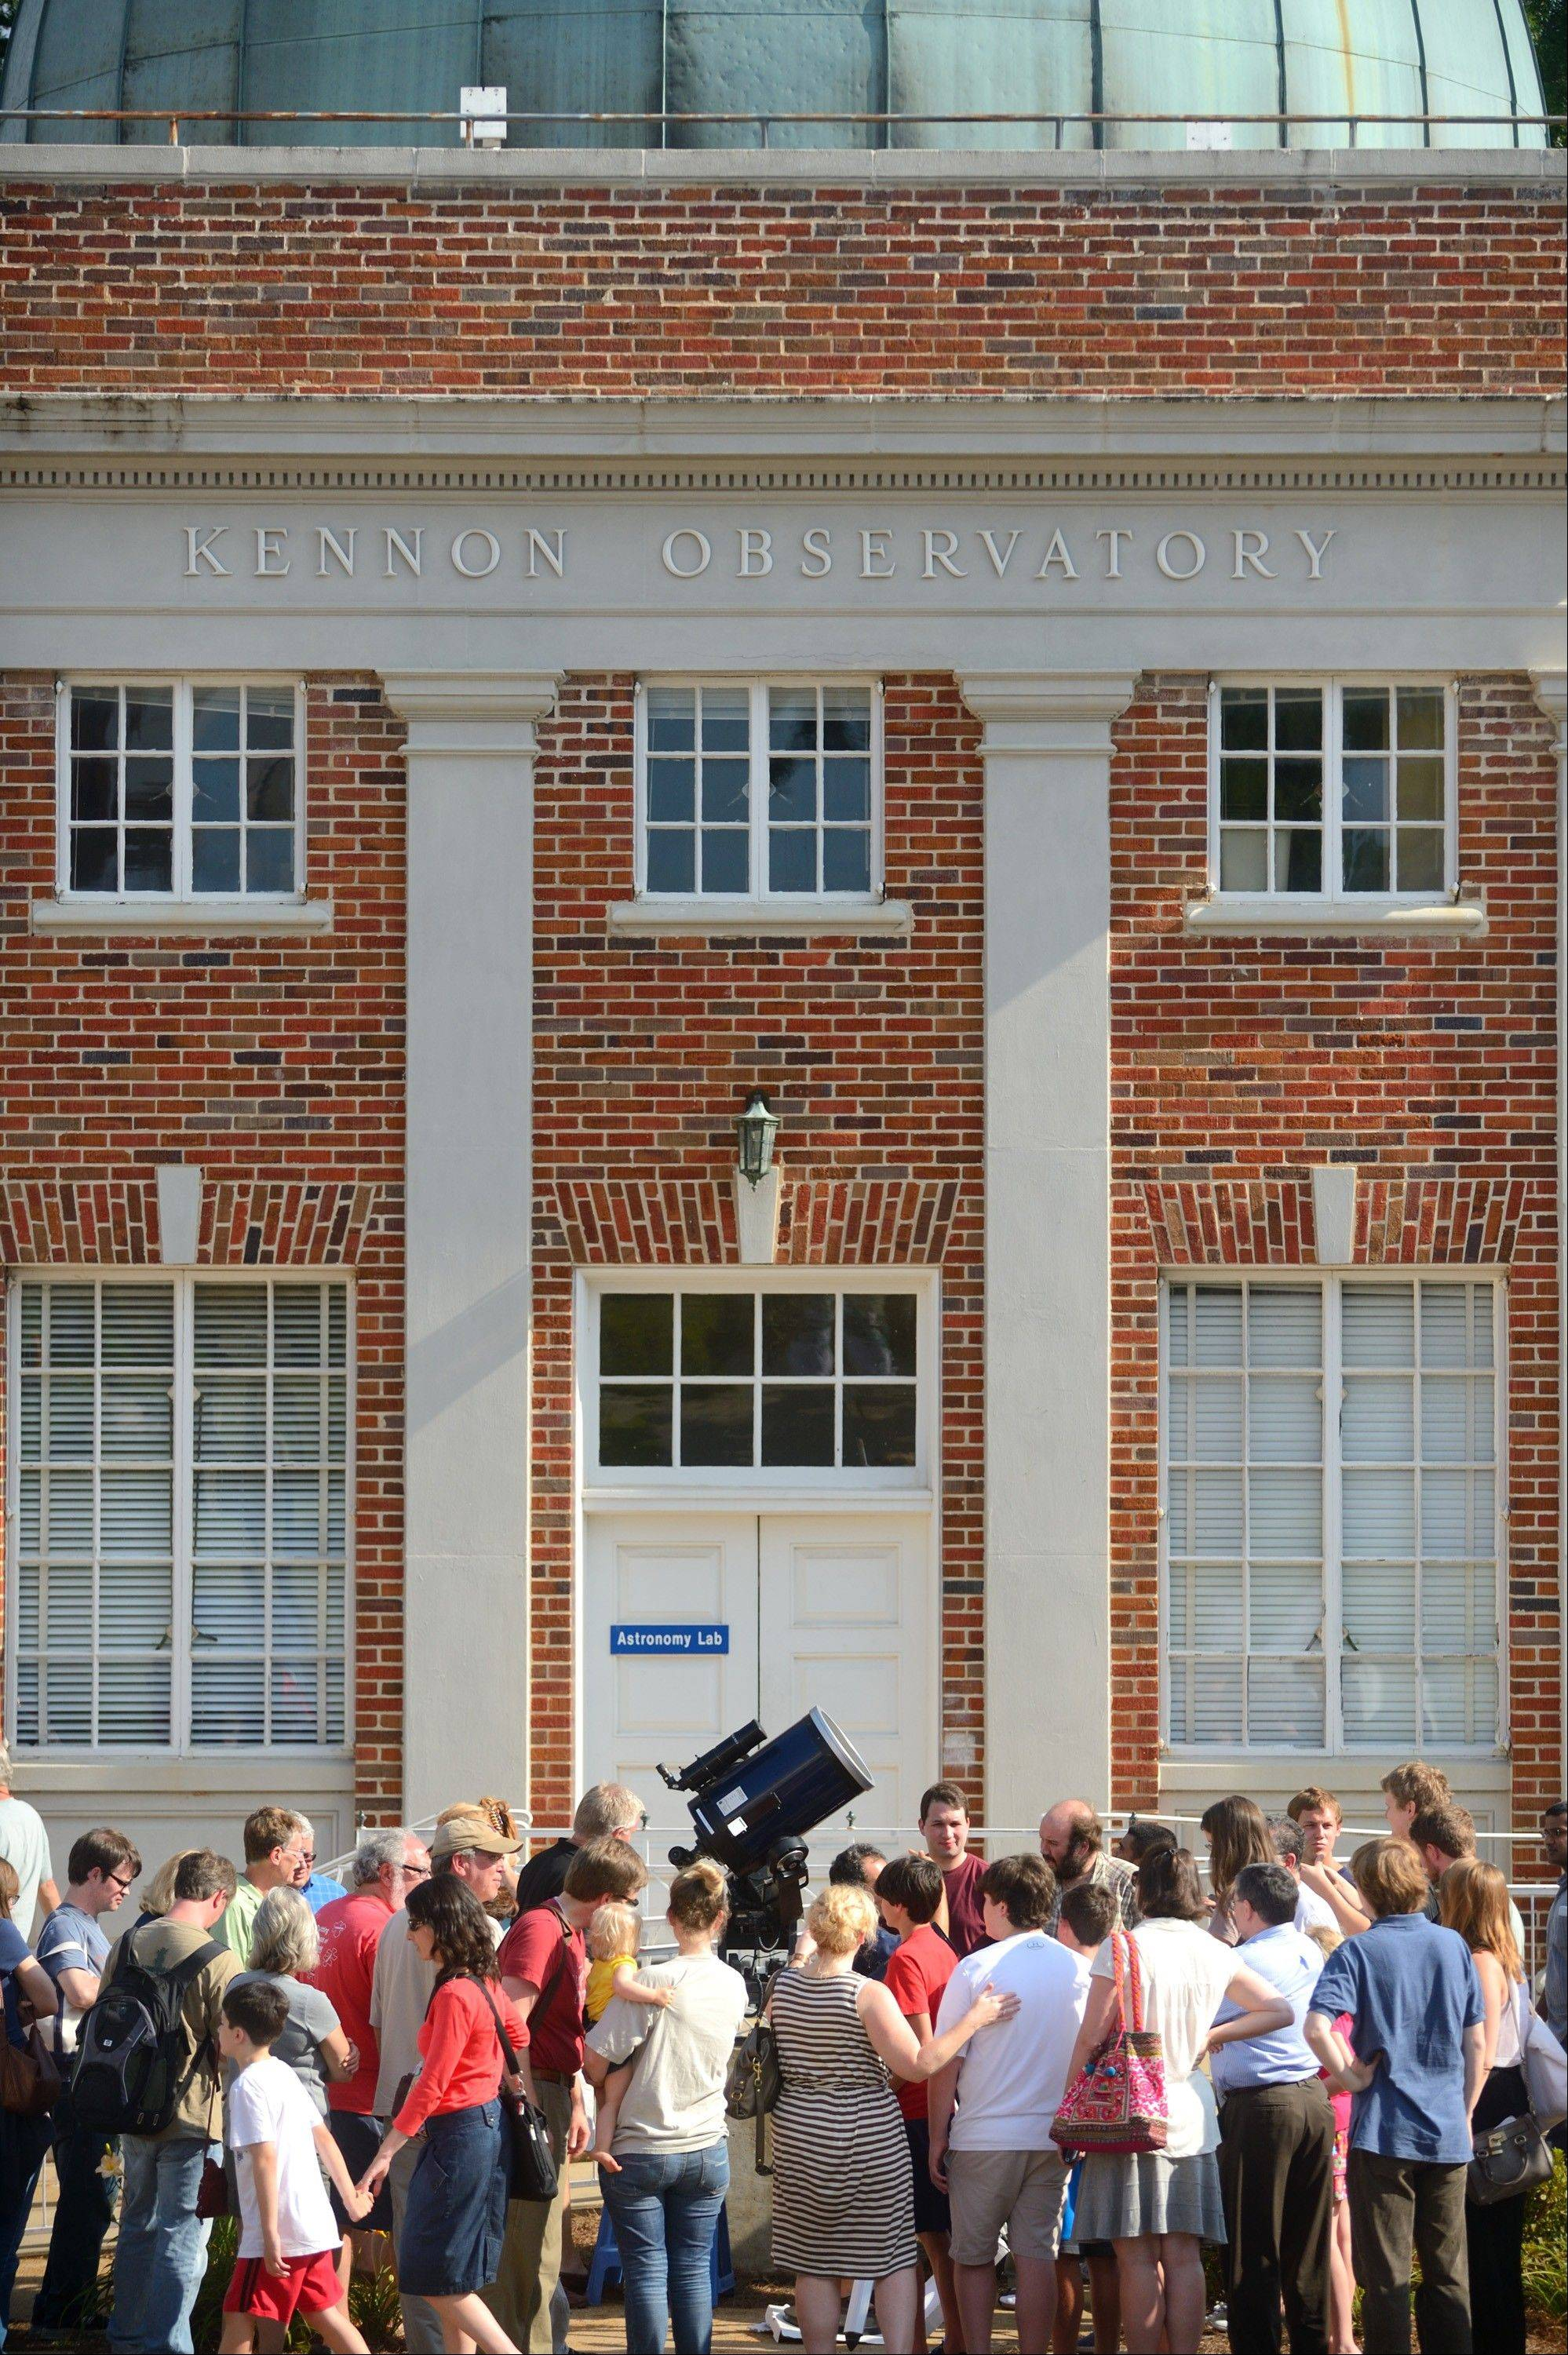 The photo provided by Ole Miss Communications shows astronomy enthusiasts gather to view the transit of Venus in front of the sun at the Kennon Observatory at The University of Mississippi in Oxford, Miss., Tuesday, June 5, 2012.